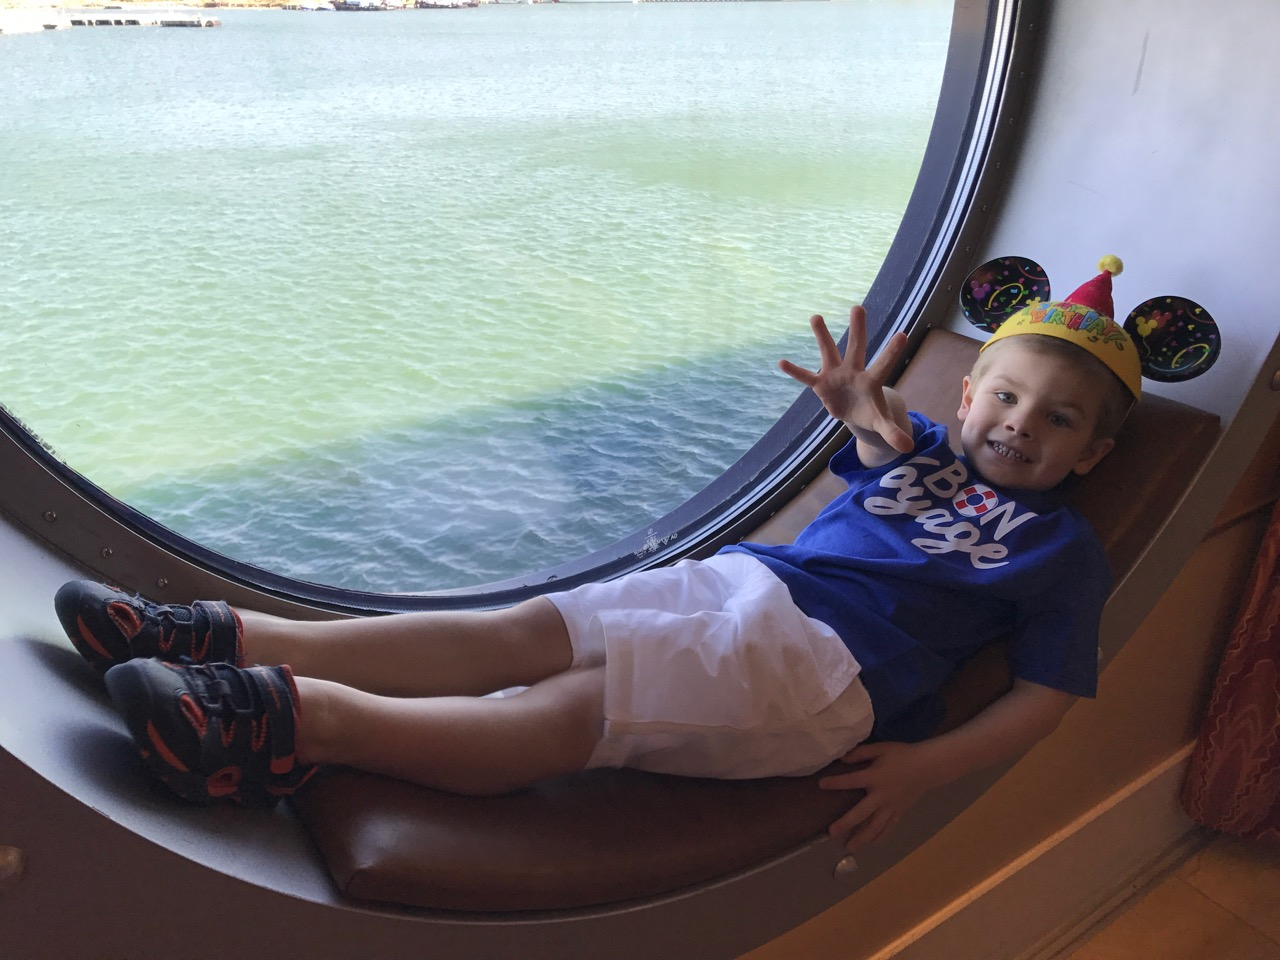 Disney Dream Porthole Picture